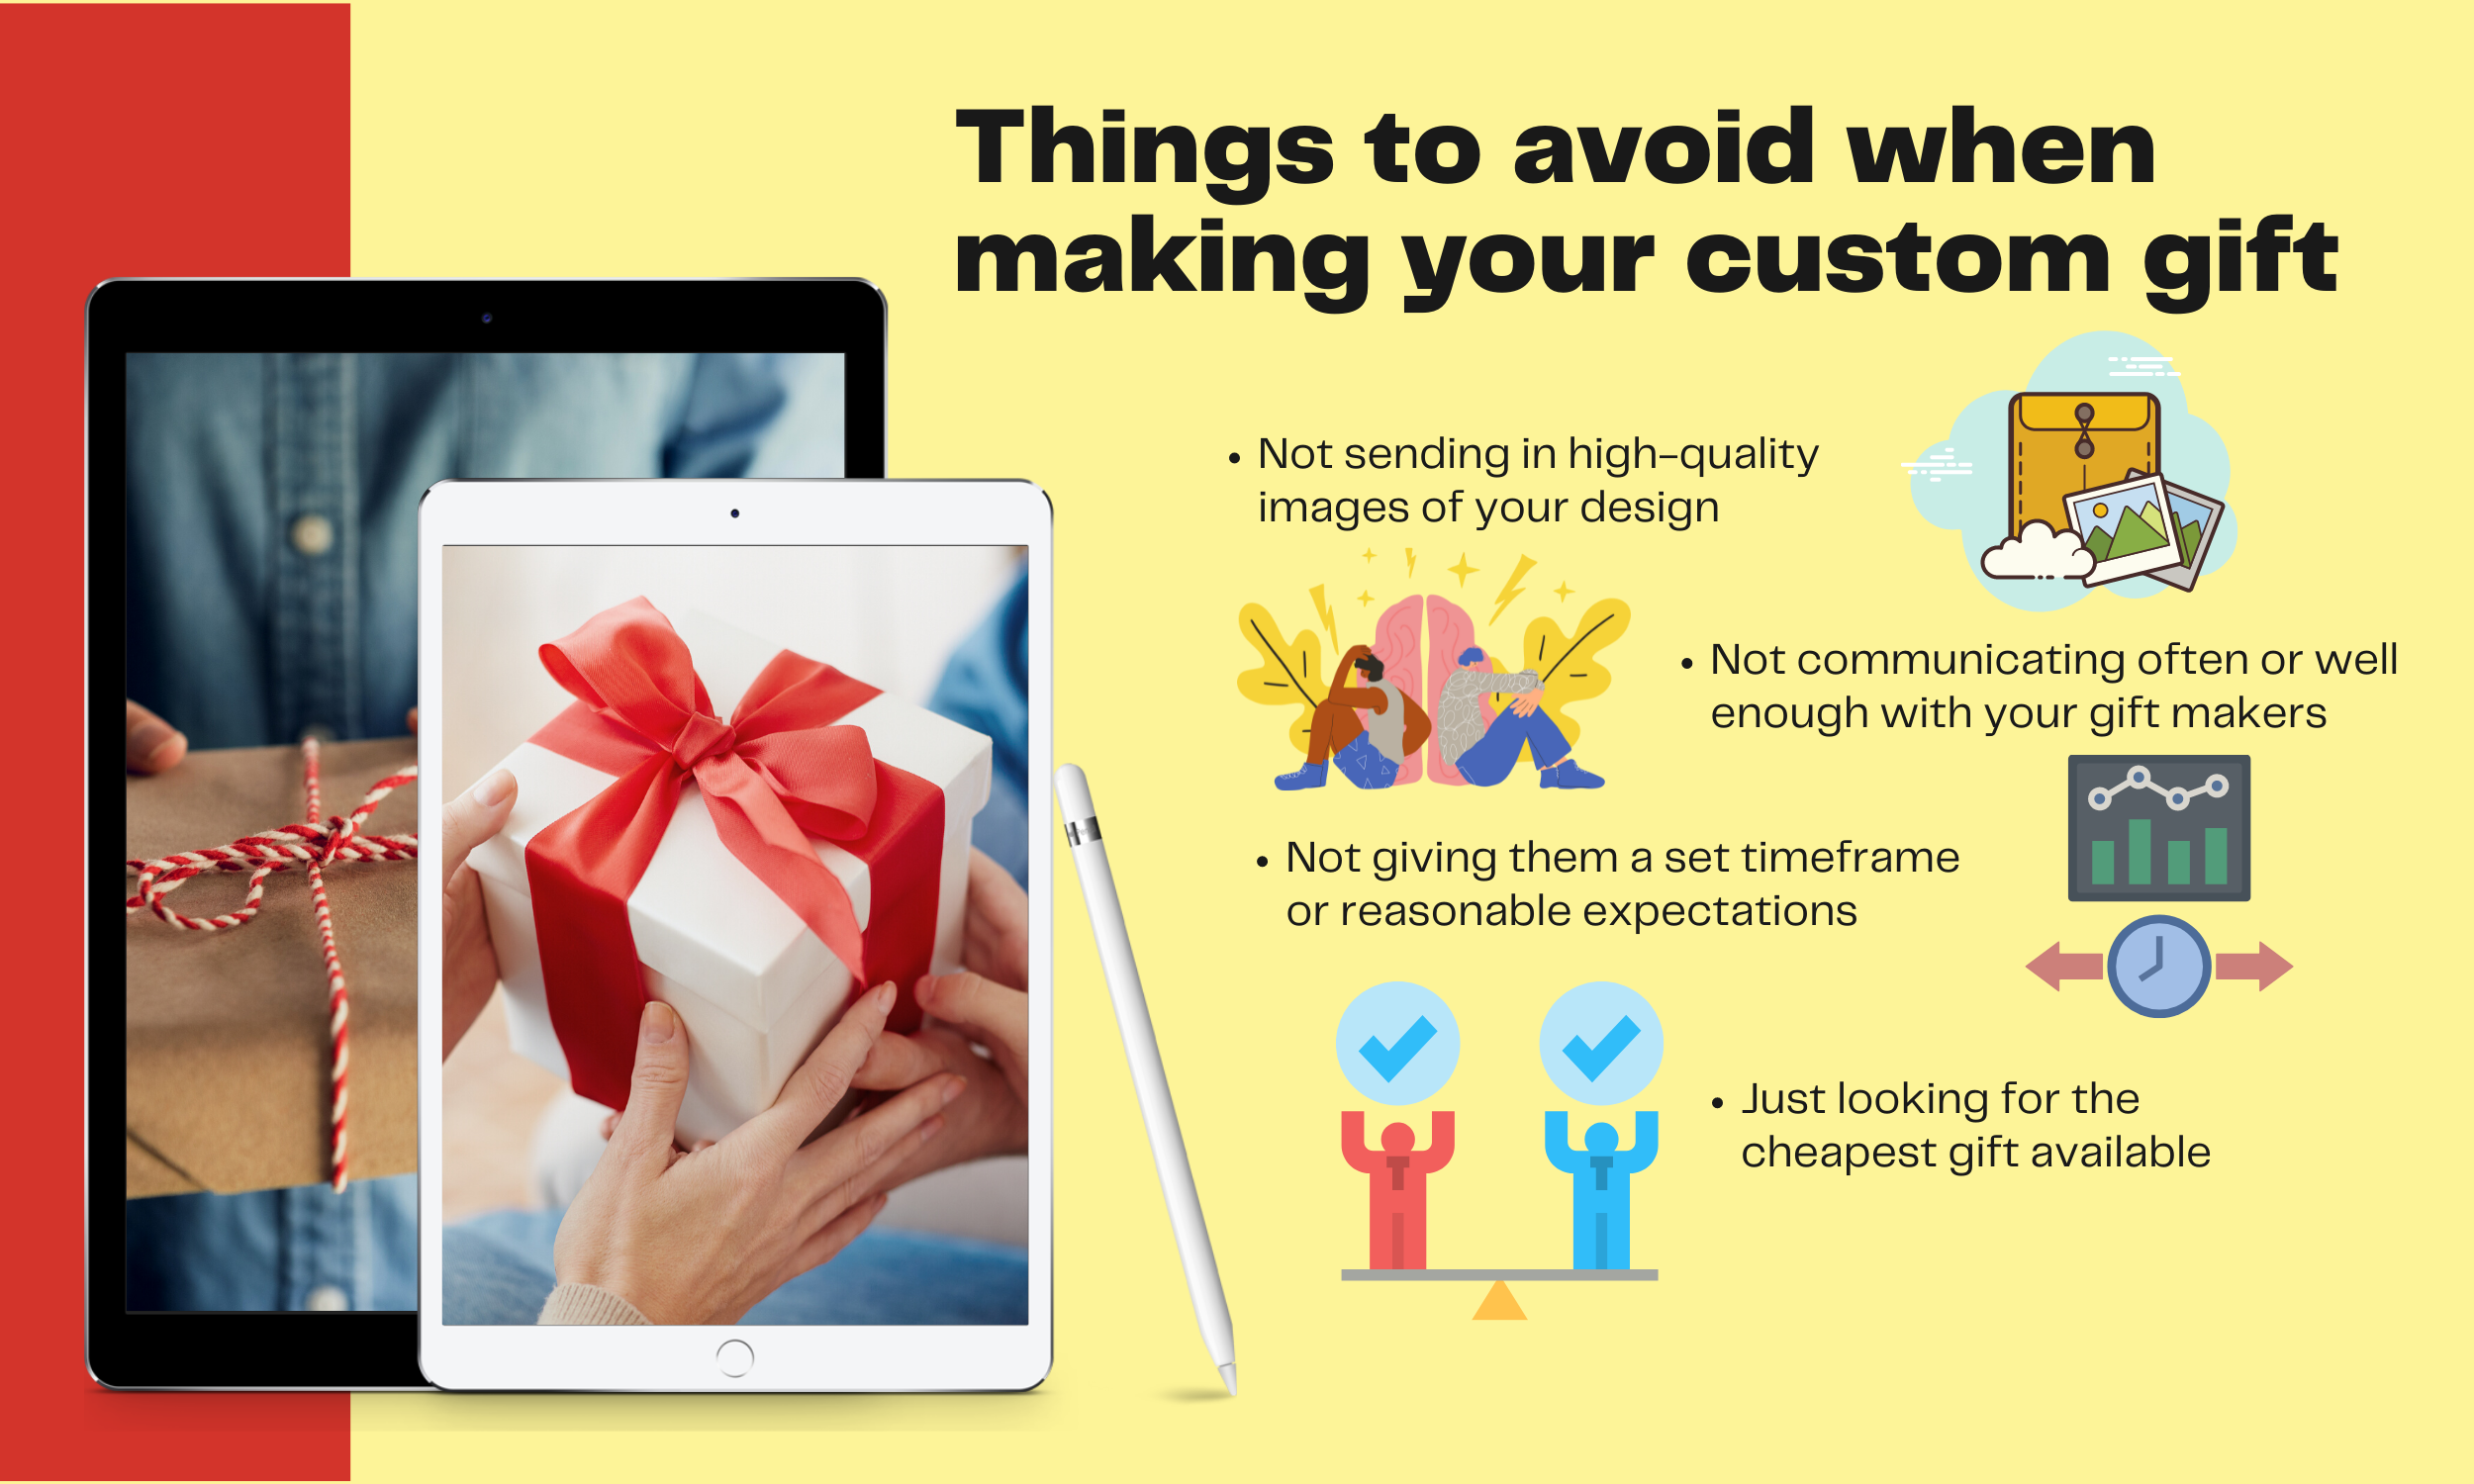 Things-to-avoid-when-making-your-custom-gift